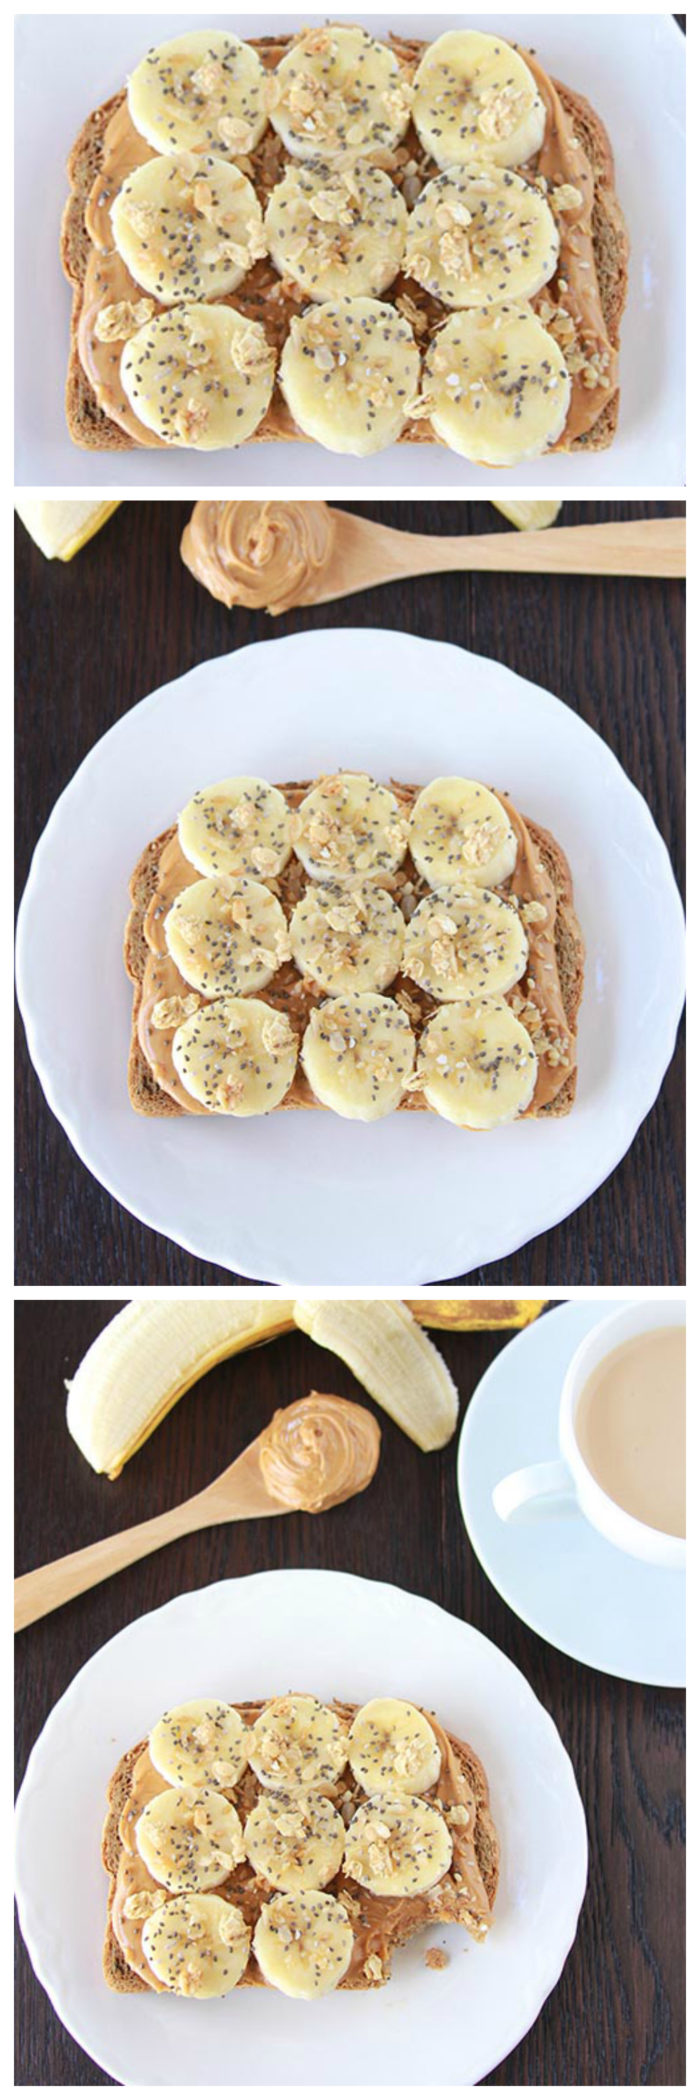 Banana, Peanut Butter, and Granola Toast on www.cookingwithuthie.com will be your new favorite quick and healthy way to start the day!